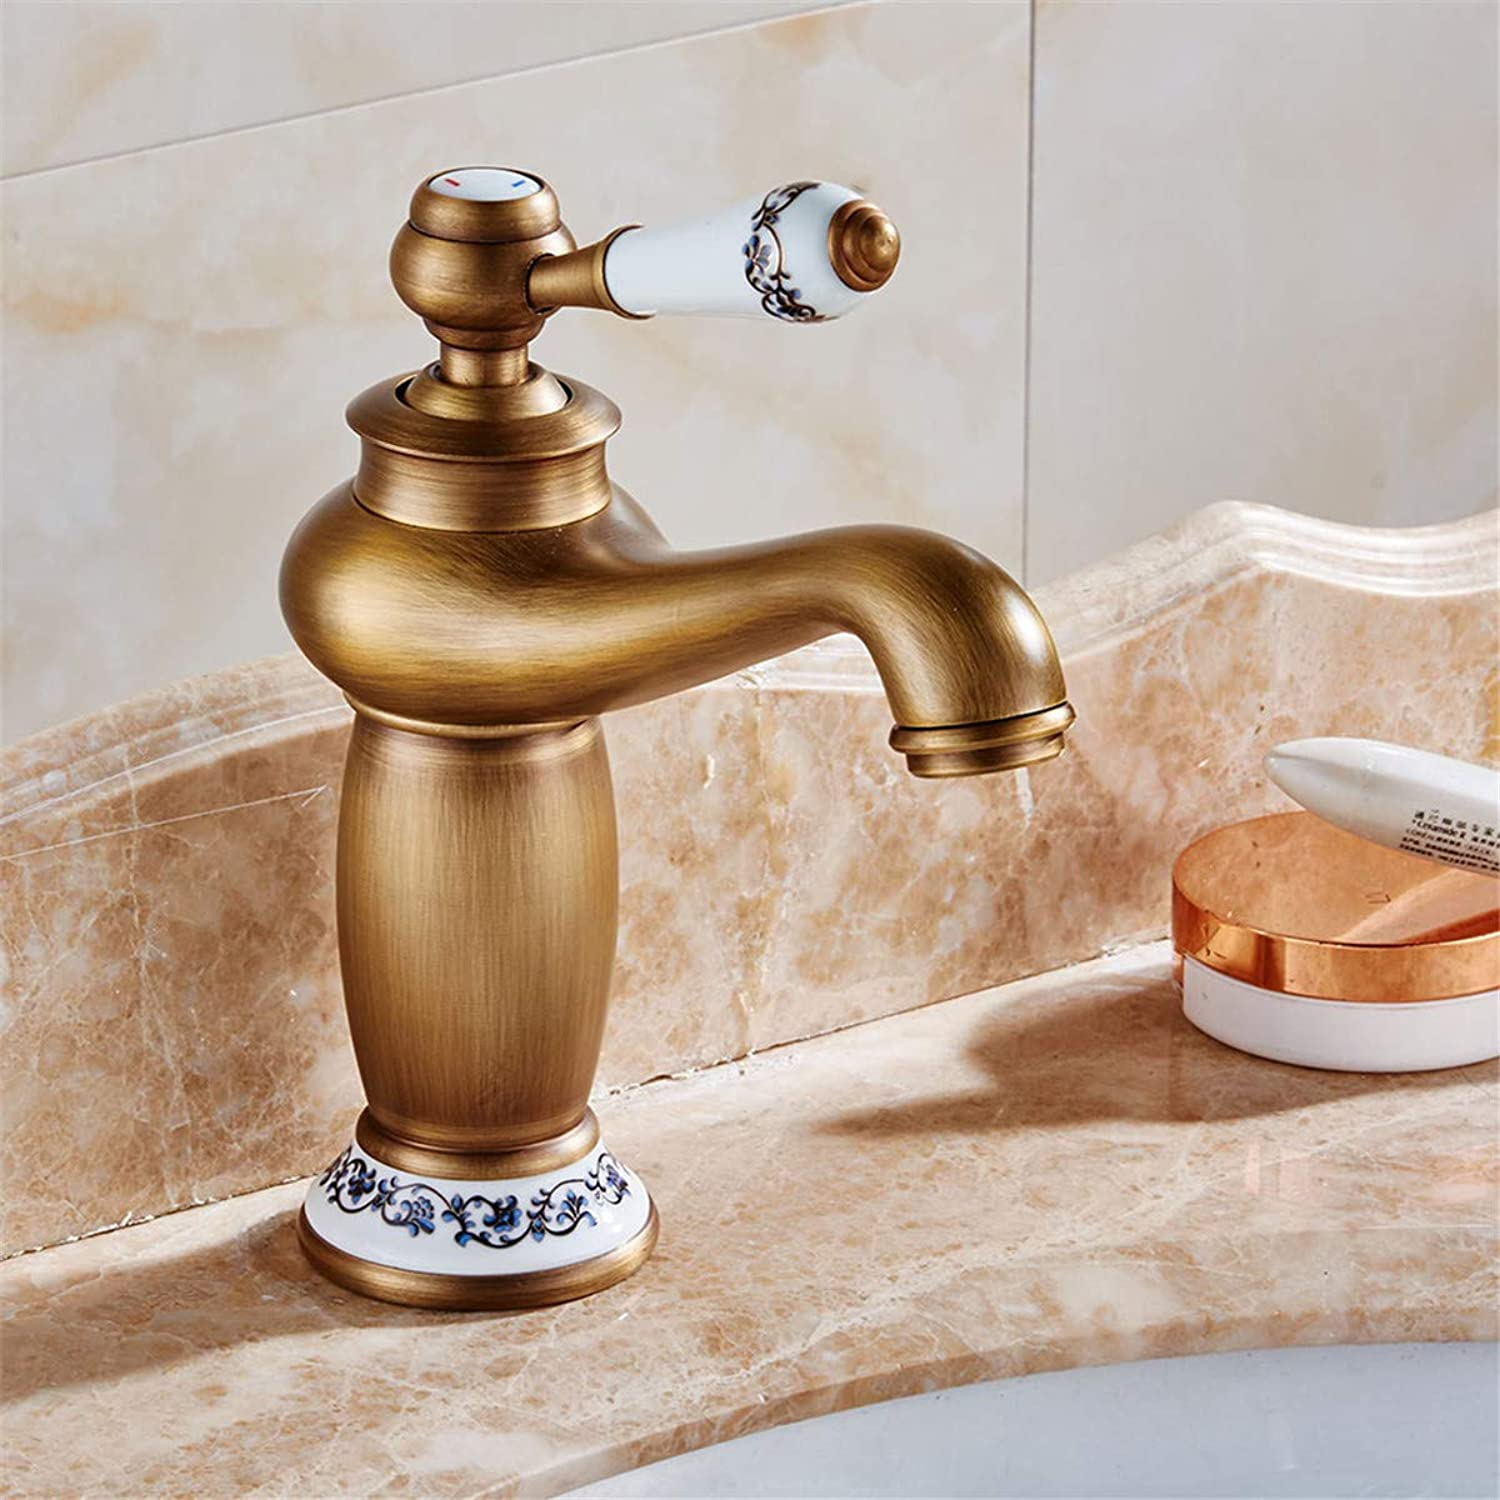 goldYING Taps Faucets??All Copper European Hot And Cold Faucet Antique Basin Faucet Heightening Single Hole Above Counter Basin Faucet Retro Magic Lamp Faucet